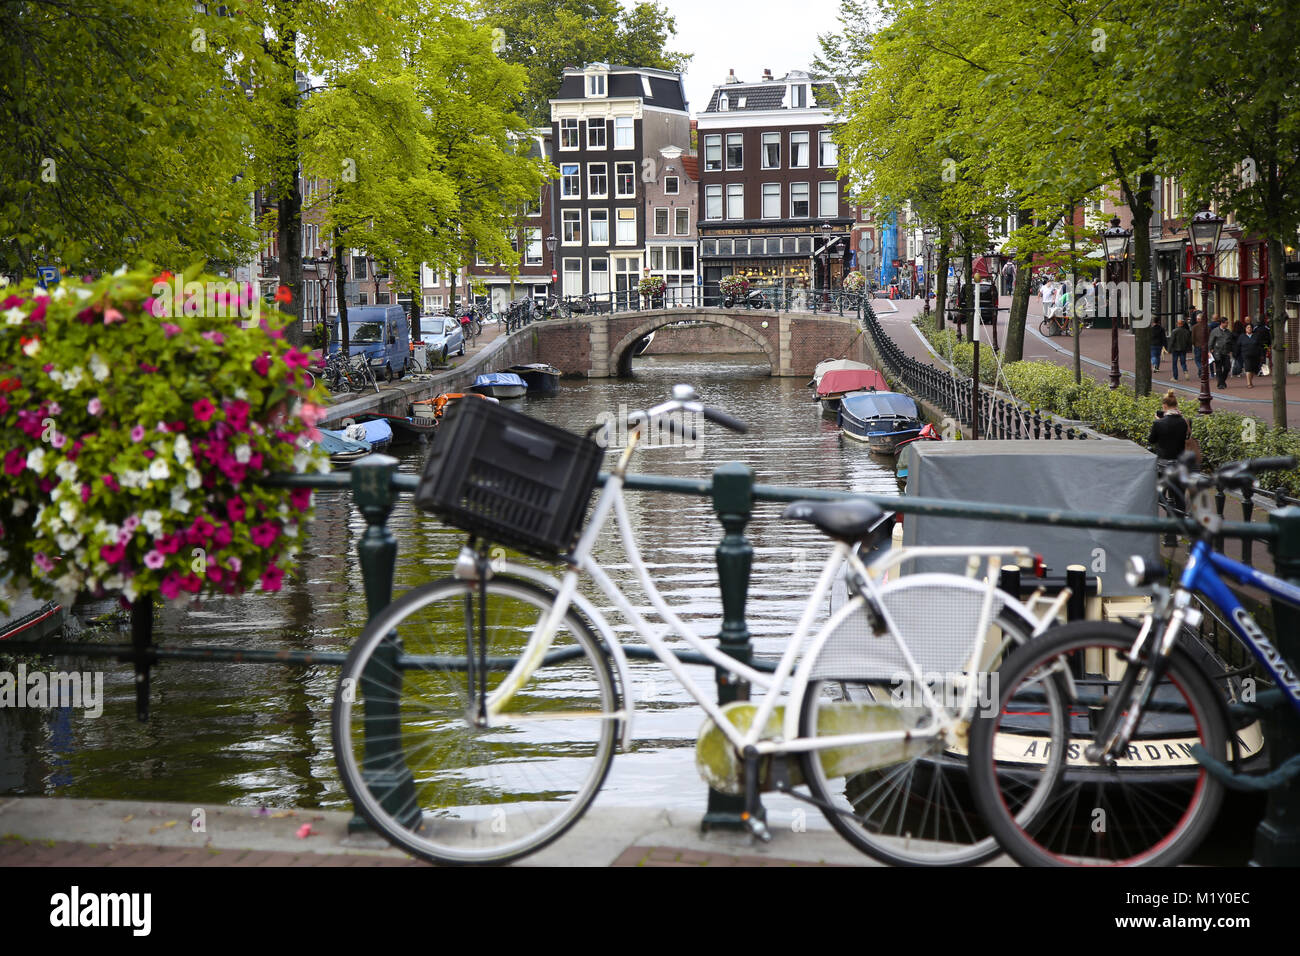 AMSTERDAM, THE NETHERLANDS - AUGUST 18, 2015: View on Prinsengracht from Lijnbaansgracht. Street life, Canal, bicycle - Stock Image